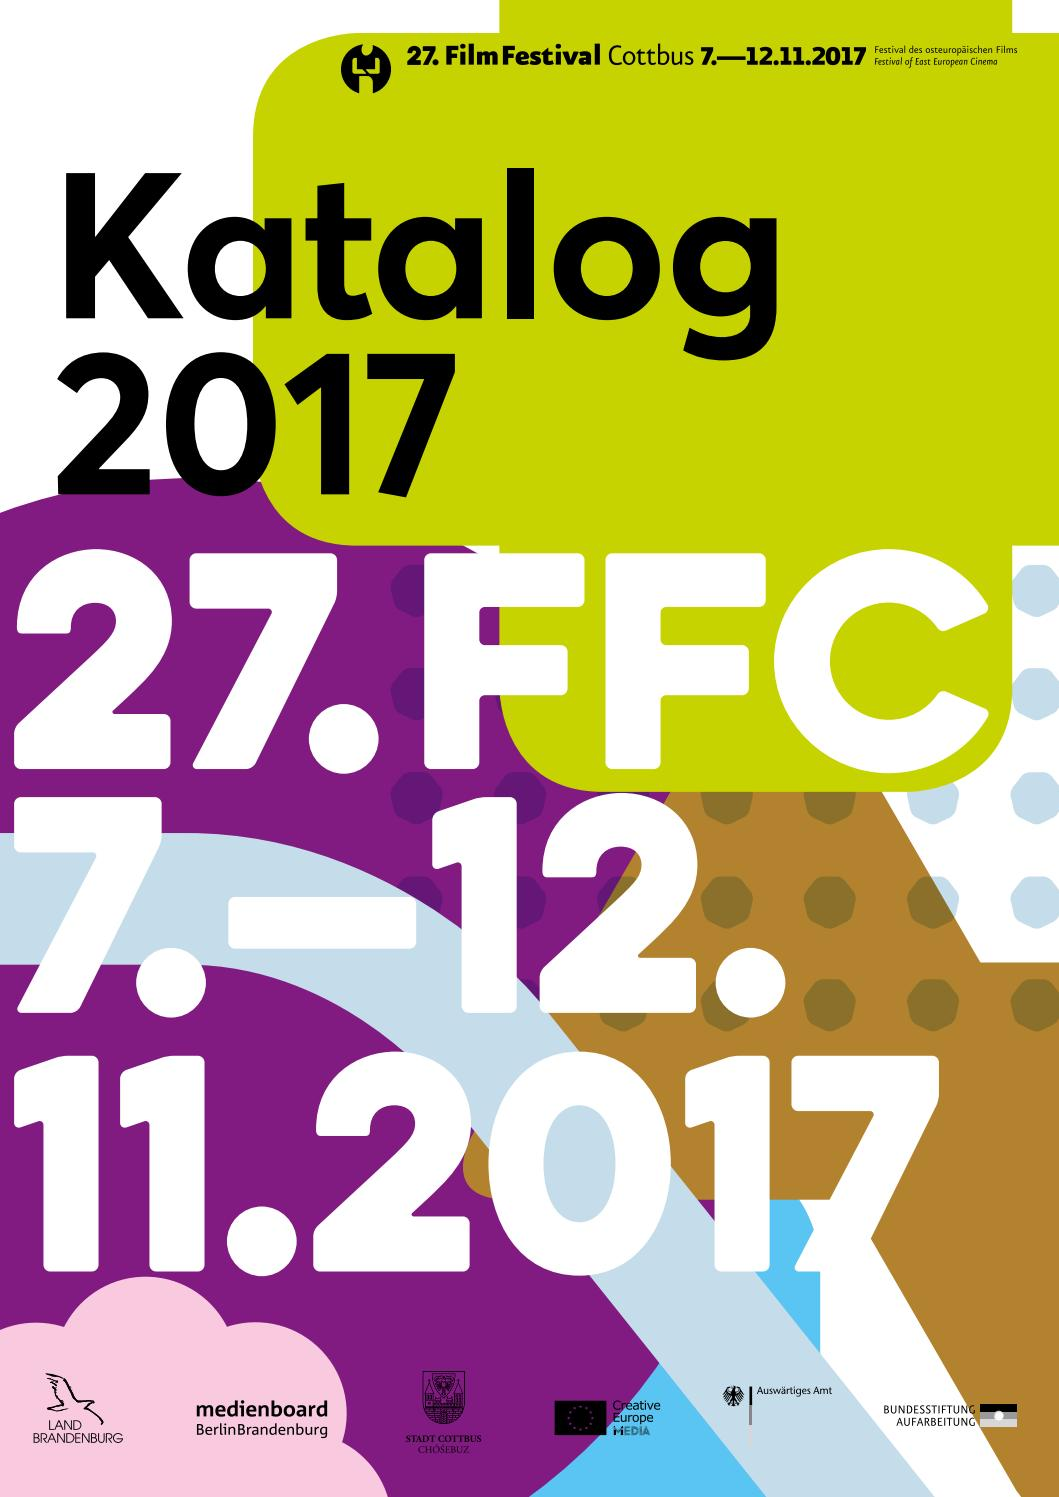 af7da74c6f40 27. FilmFestival Cottbus - Katalog Catalogue by FilmFestival Cottbus - issuu